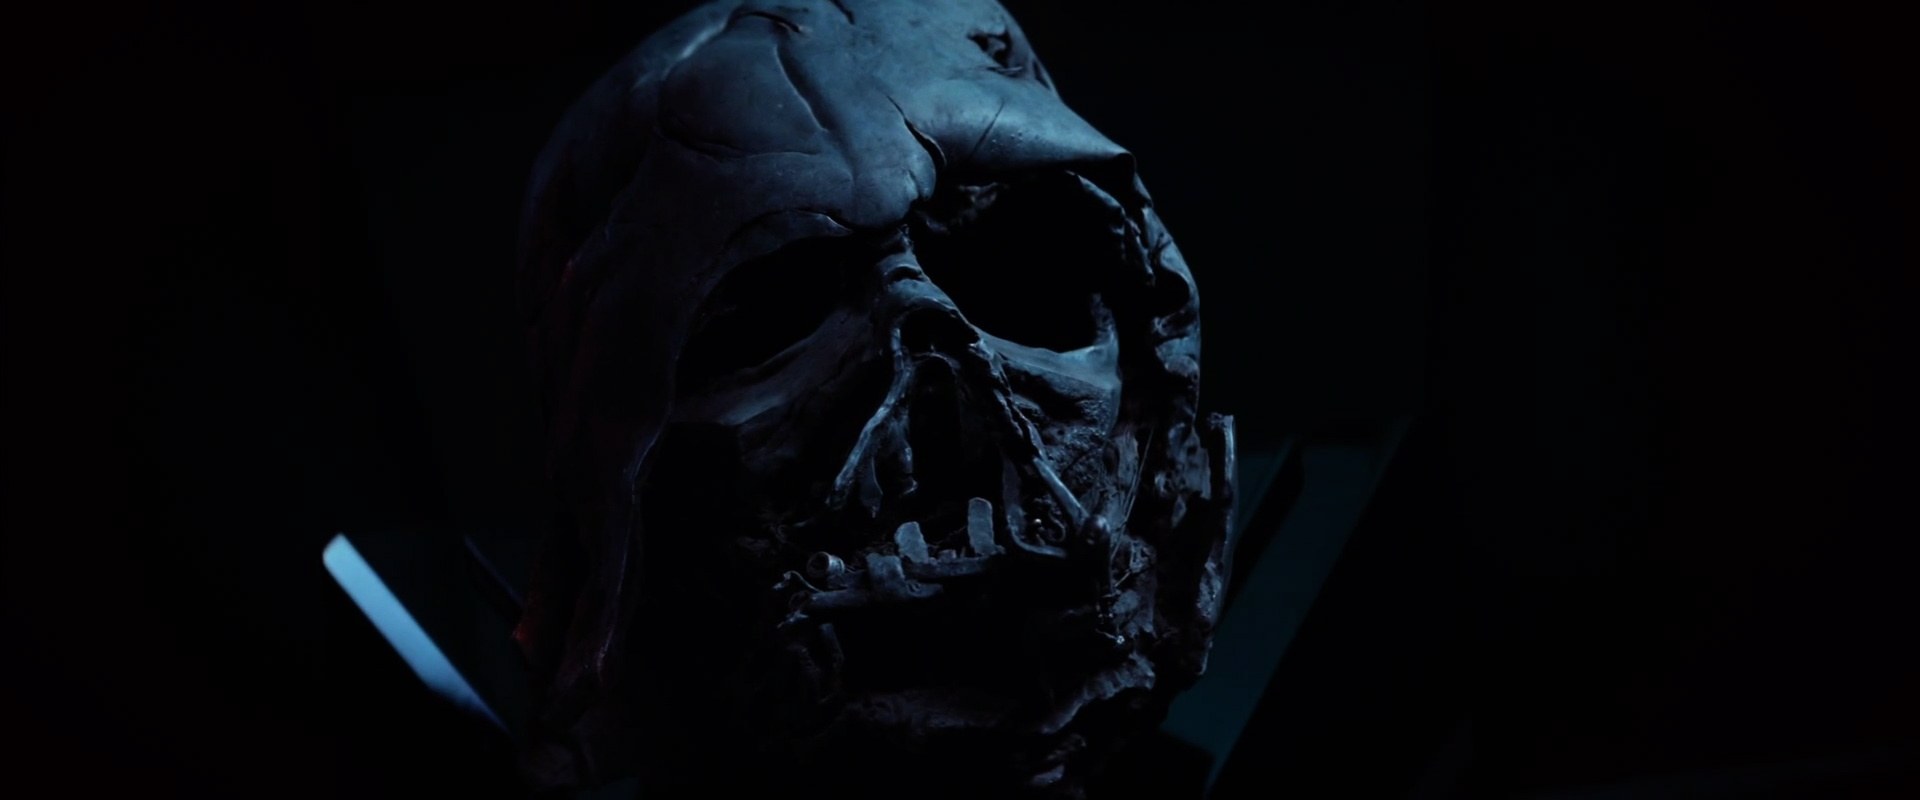 Darth Vader's melted helmet, as far as we can tell there is no skull inside. This looks a lot like the leaked concept art  from a few months ago.